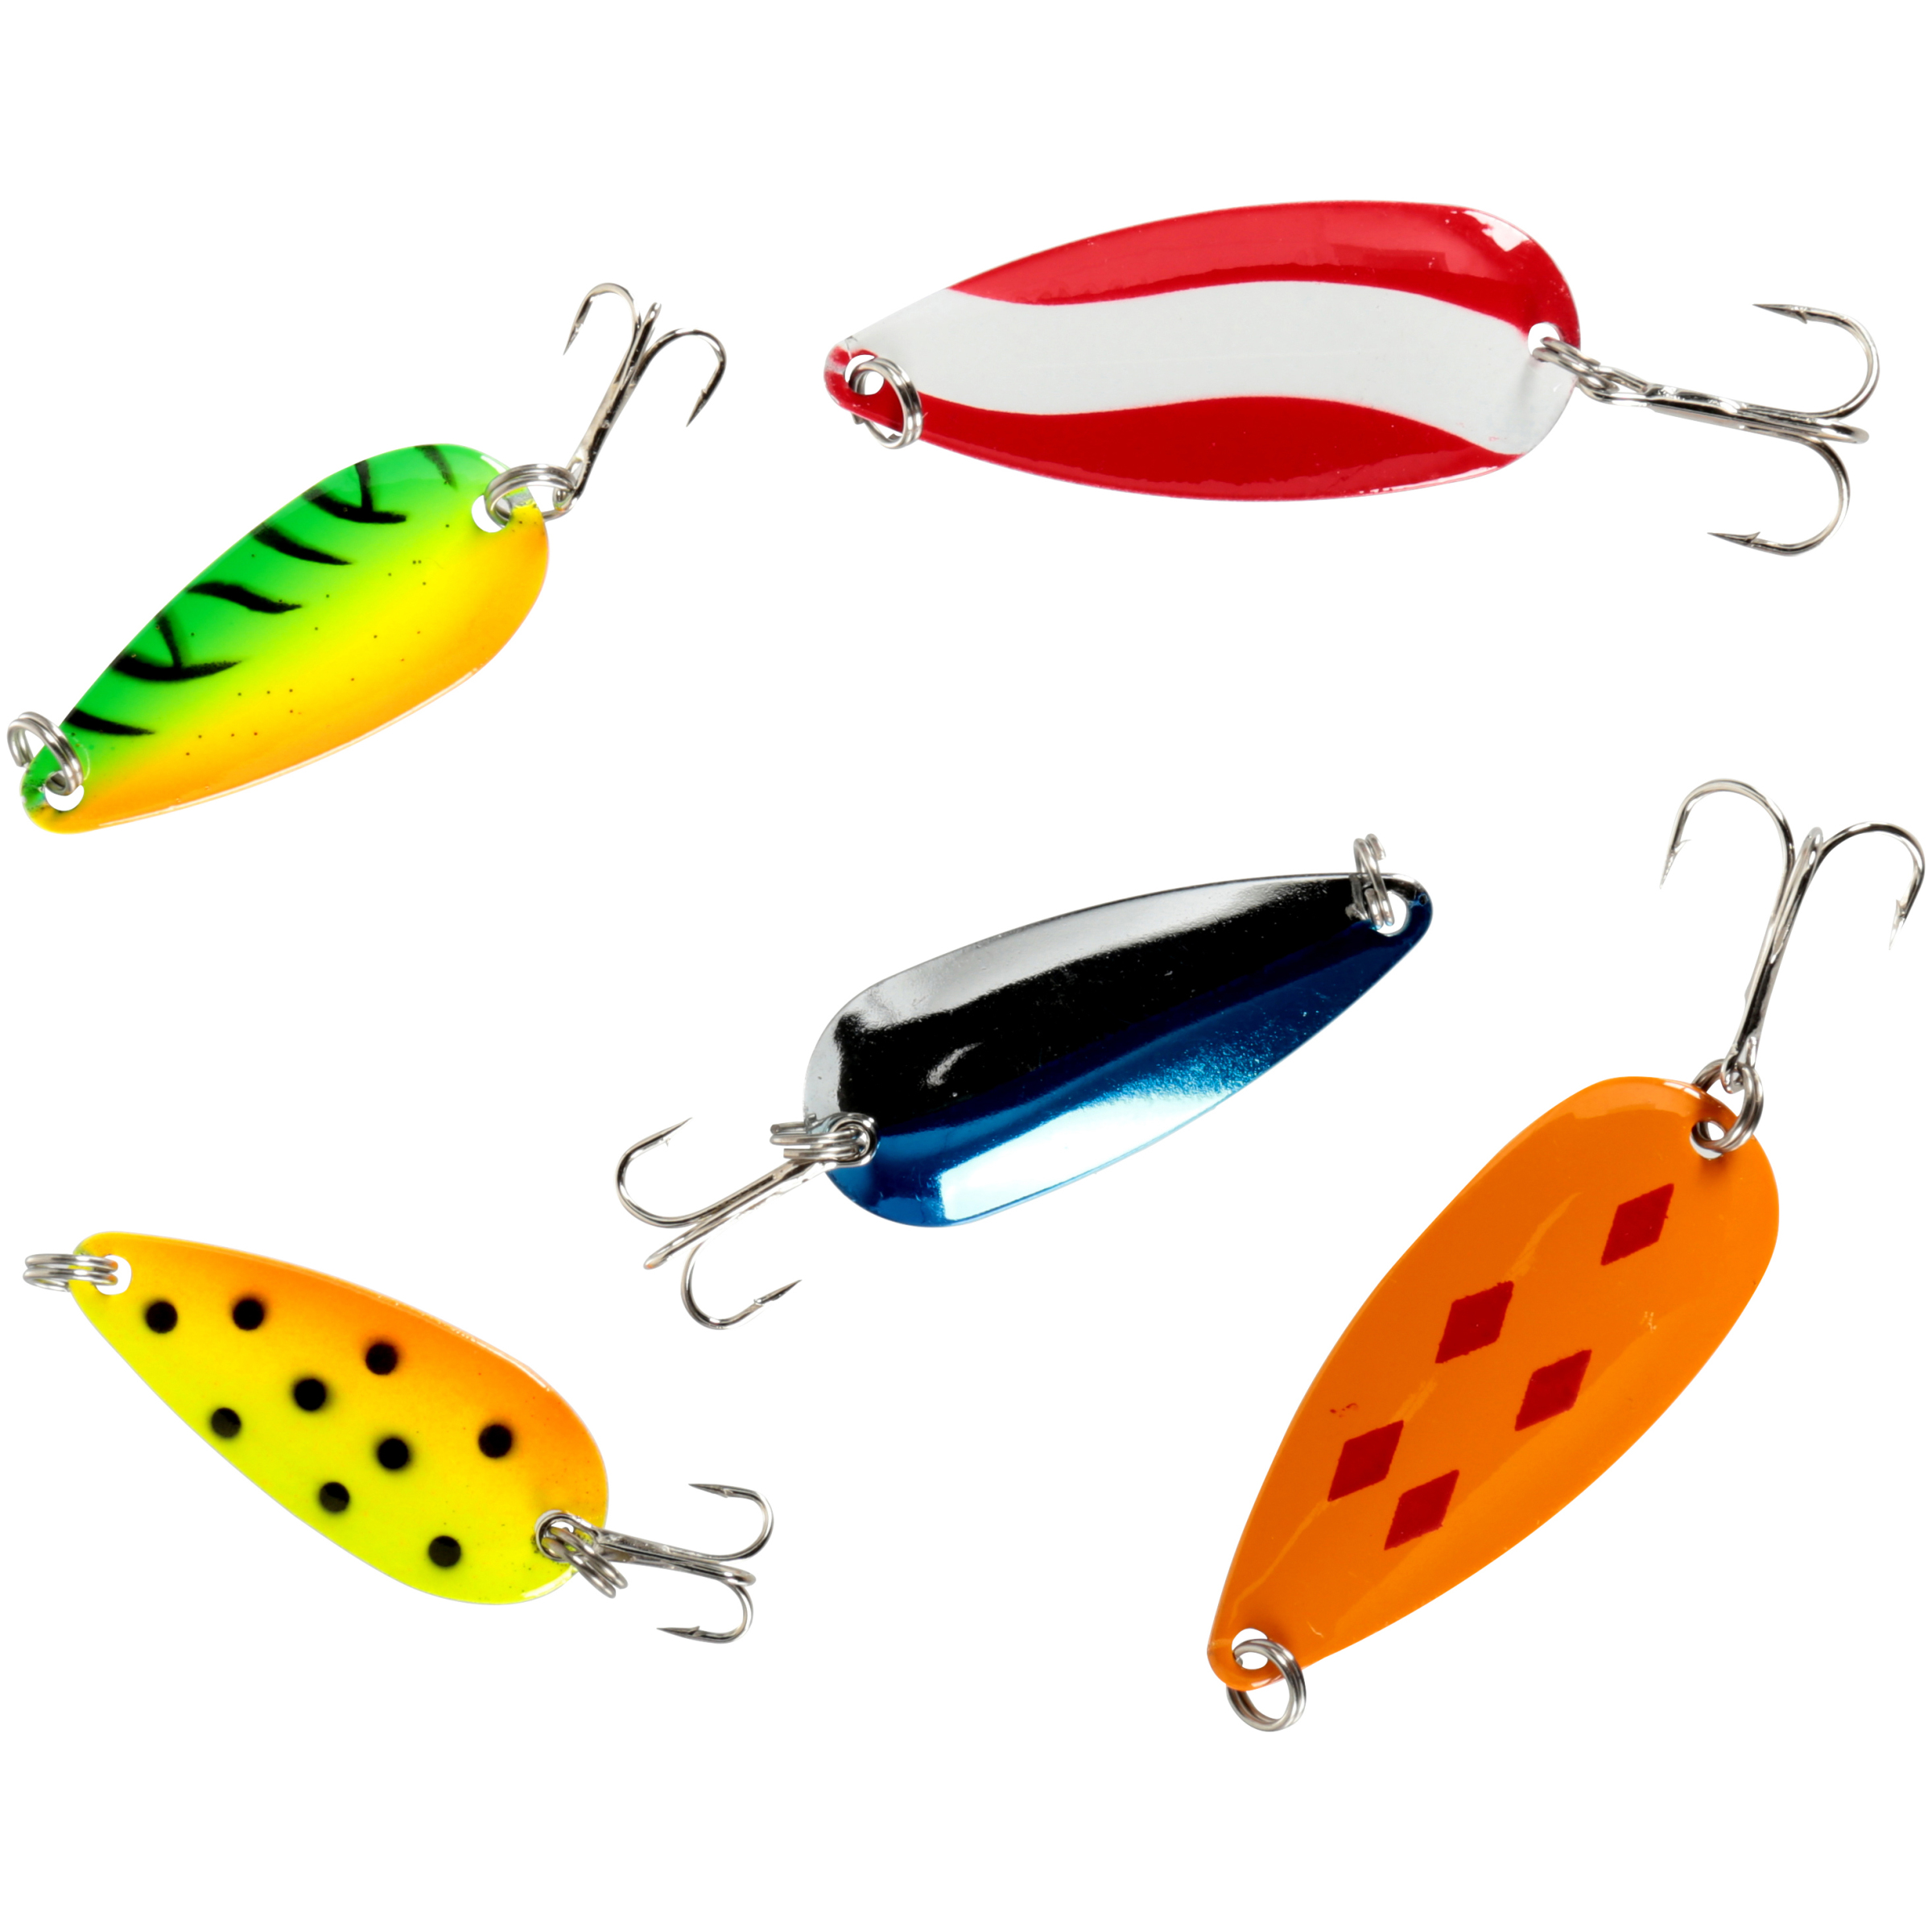 South bend super spoon assortment 5 pc lures pack